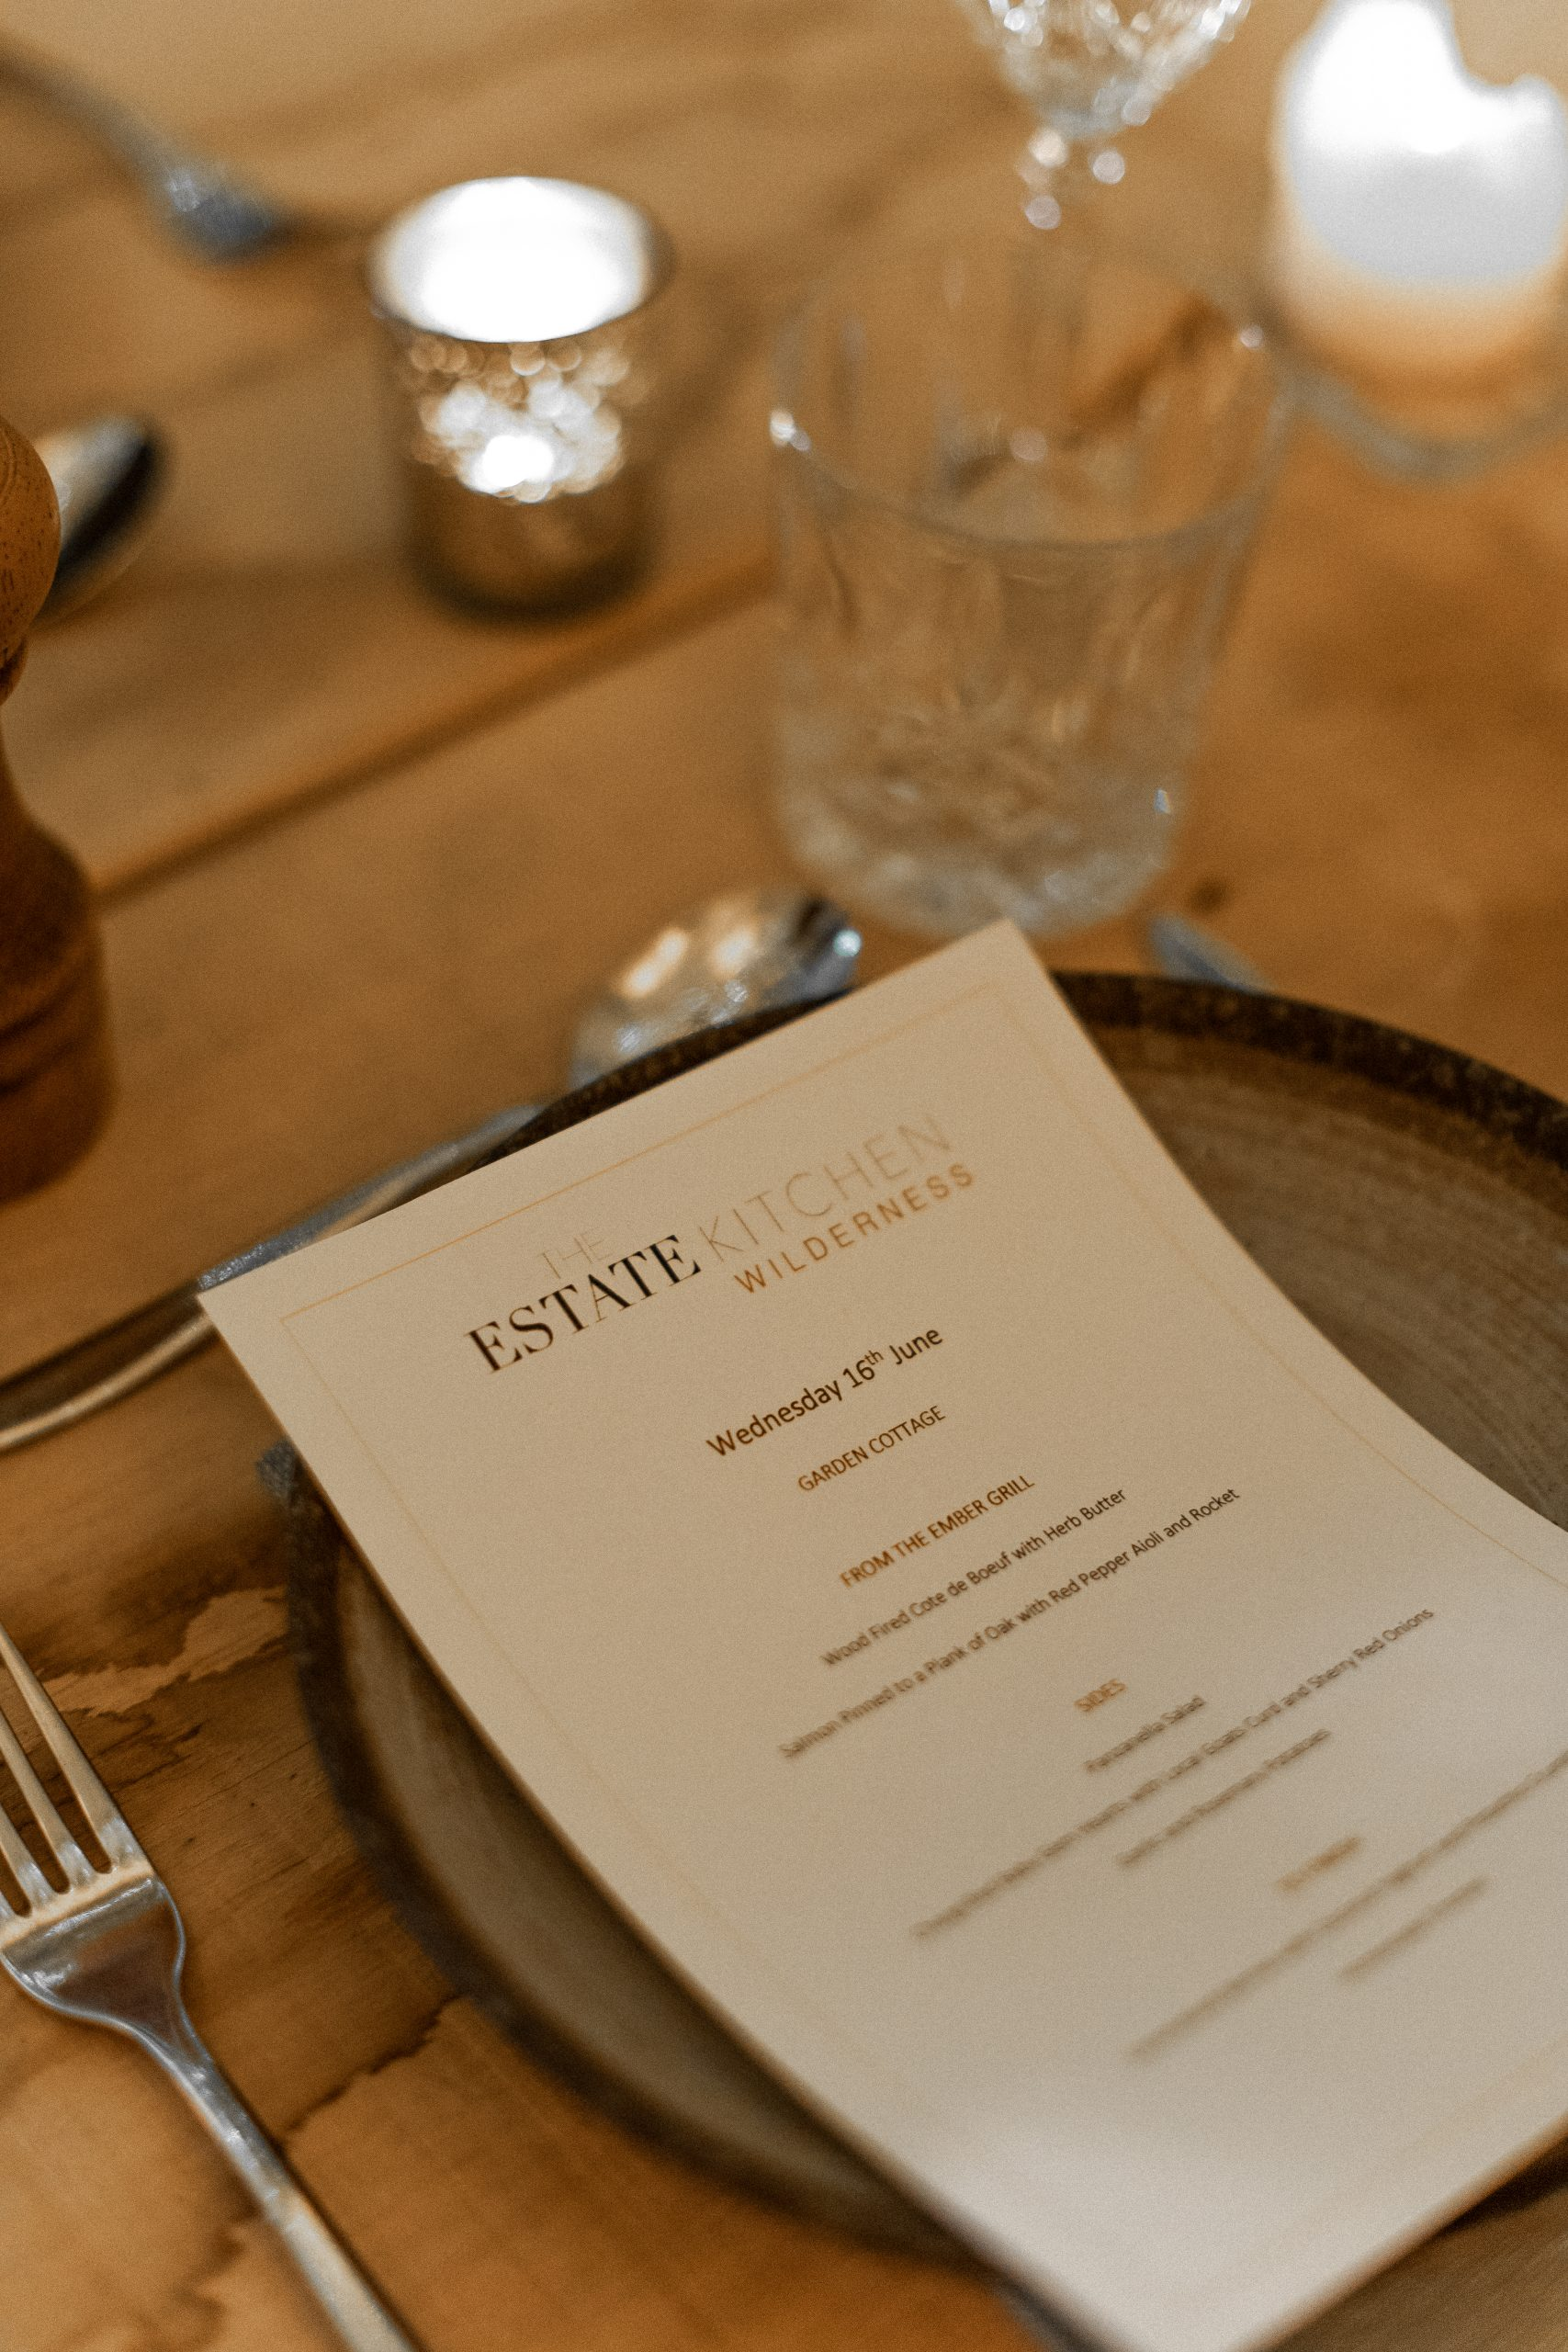 Estate Kitchen Menu - Top dishes of beef and plank-roasted salmon are visible